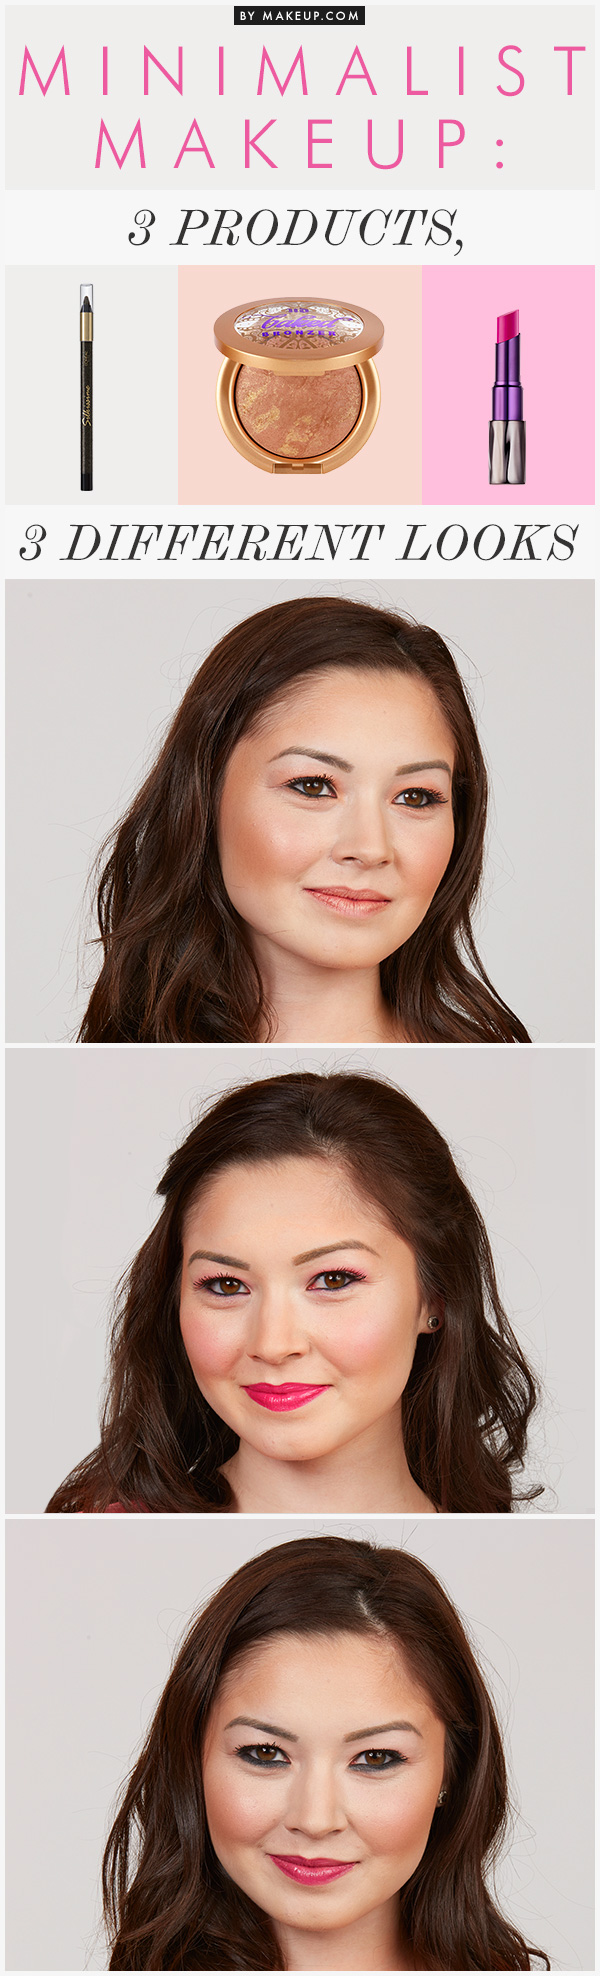 16 Makeup Tricks For Flawless Look Every Woman Should Know (5)